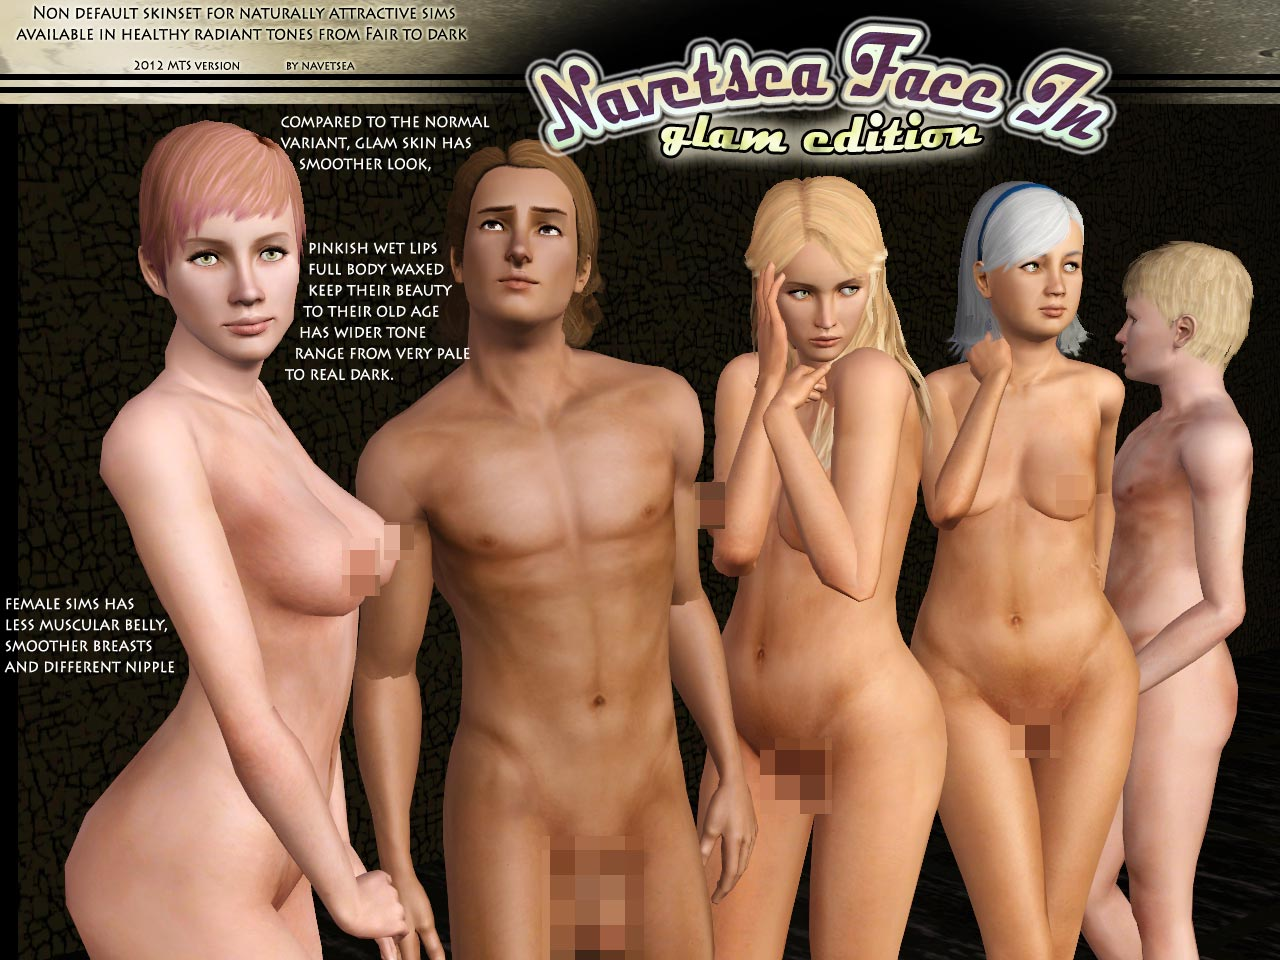 Naked girl sim porn photos